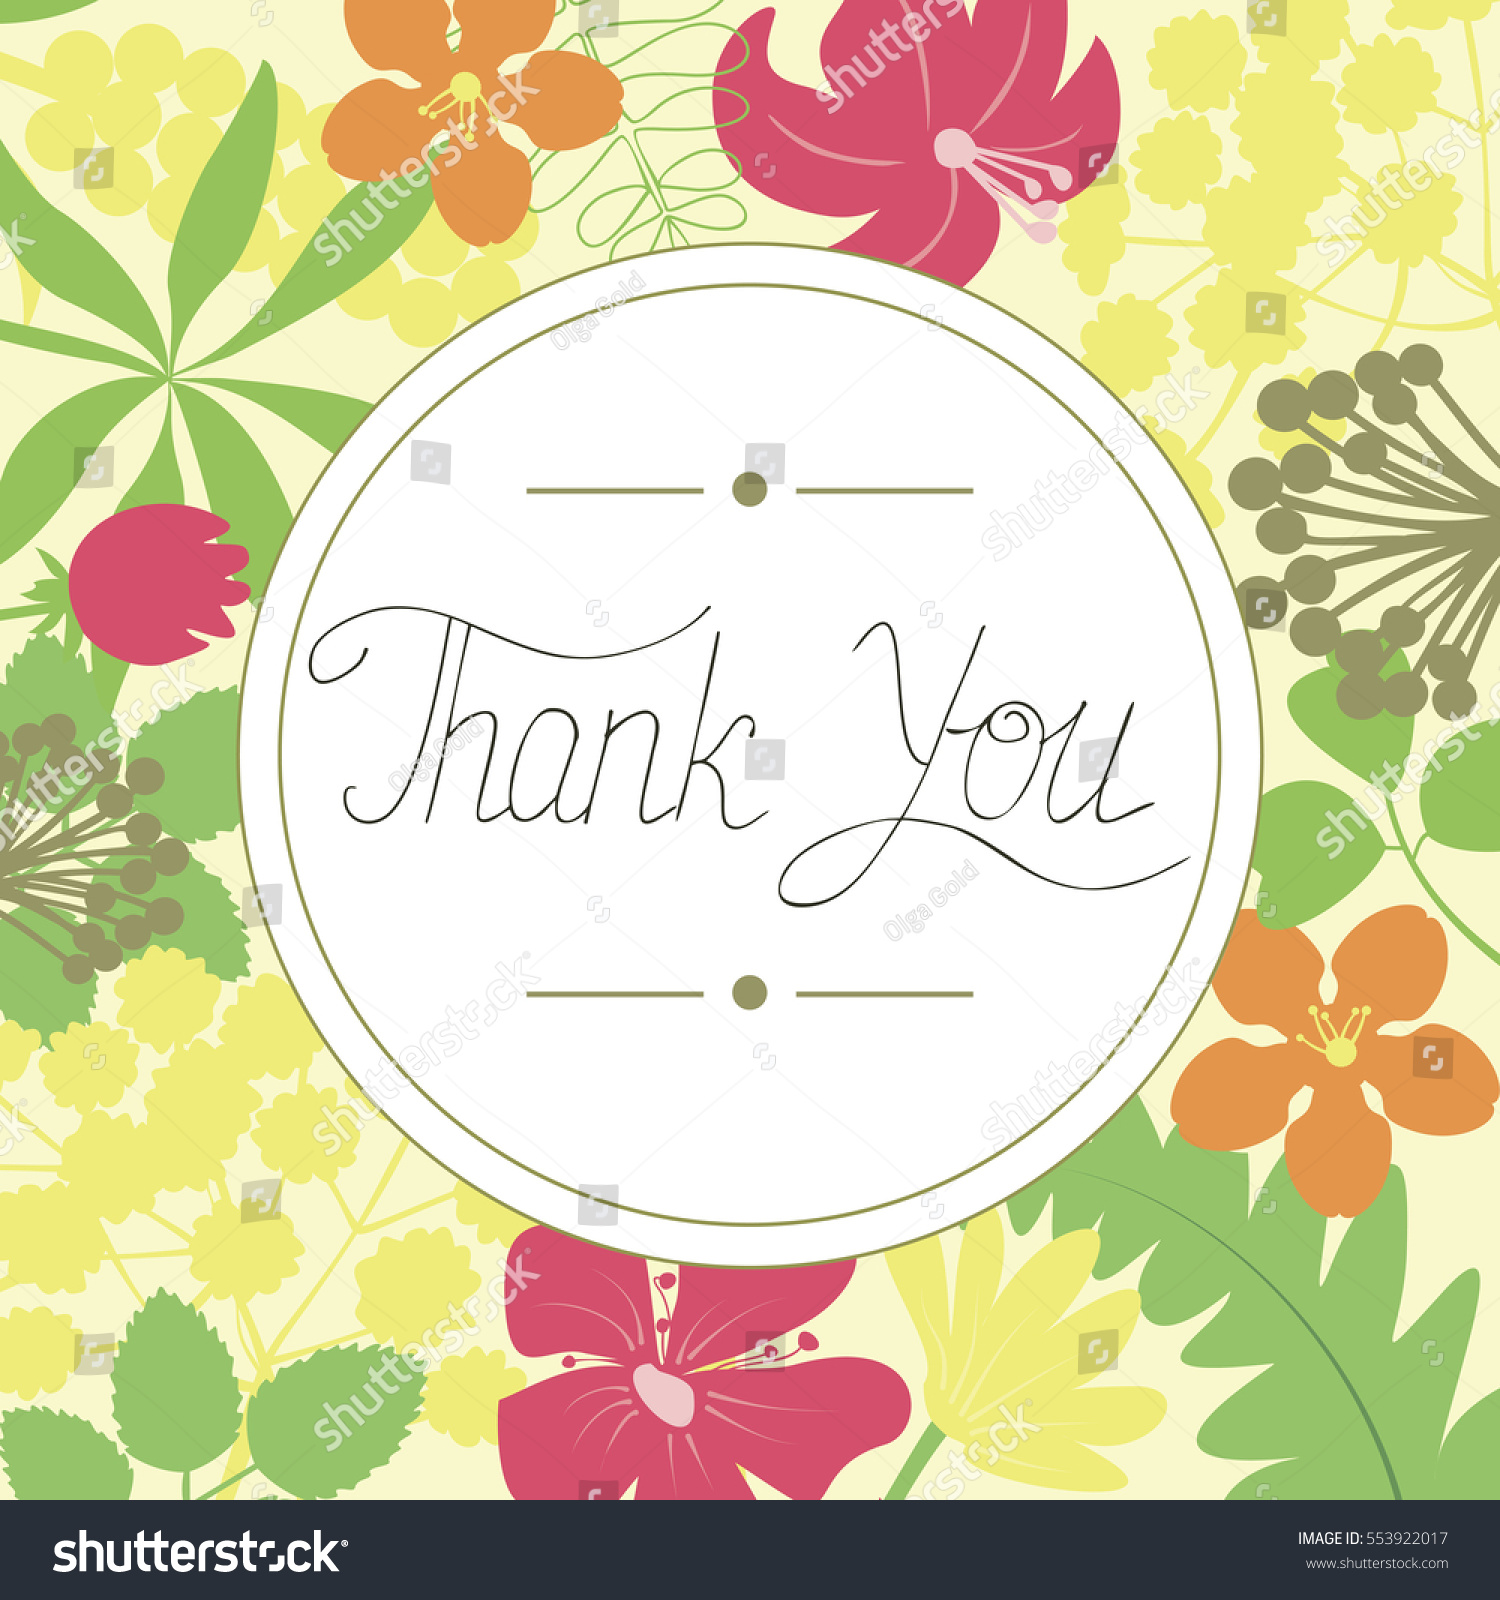 Hand Lettering Thank You Made Floral Stock Vector (Royalty